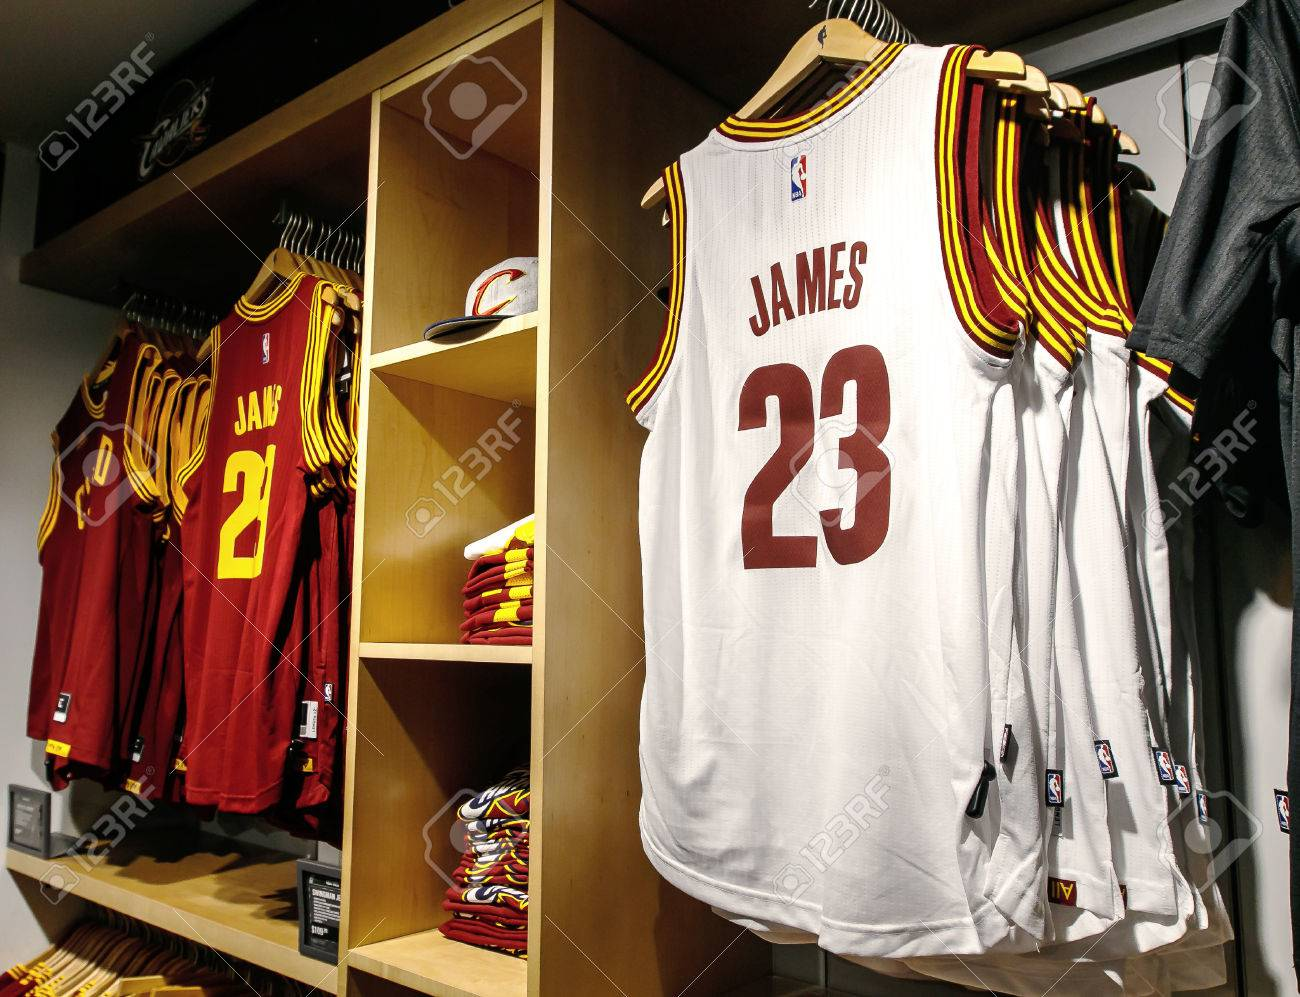 cheap for discount 198e7 a8650 New York, February 21, 2017: Replica jerseys of LeBron James..